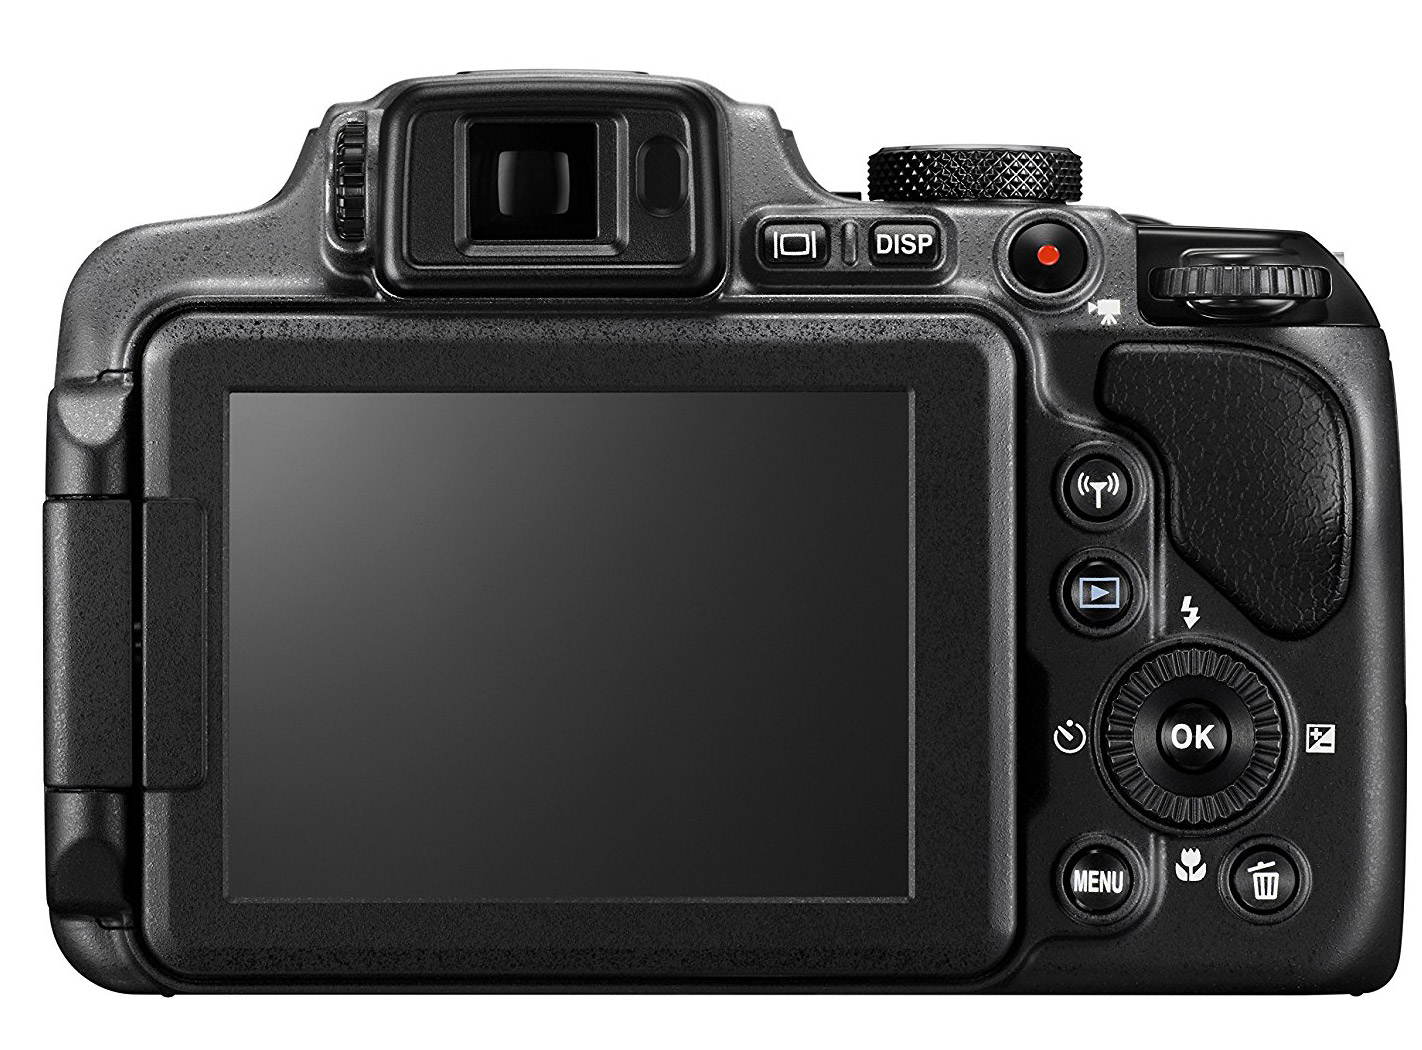 Coolpix P610 display